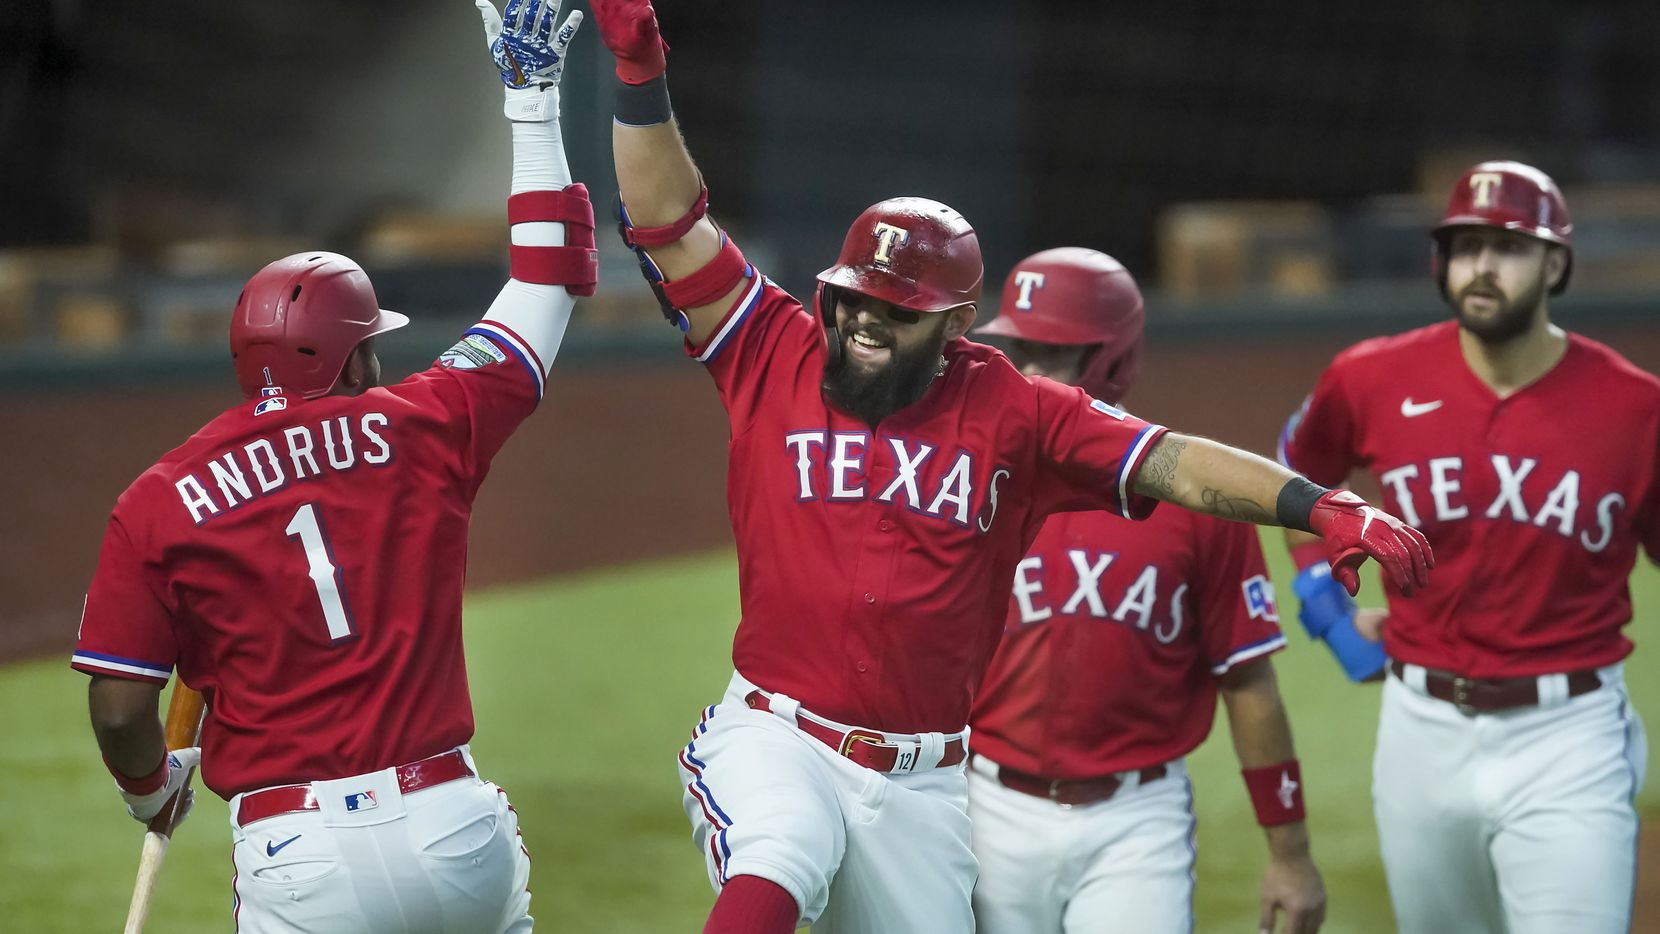 Texas Rangers second baseman Rougned Odor celebrates with shortstop Elvis Andrus after hitting a 3-run home run during the first inning against the Oakland Athletics at Globe Life Field on Saturday, Sept. 12, 2020.